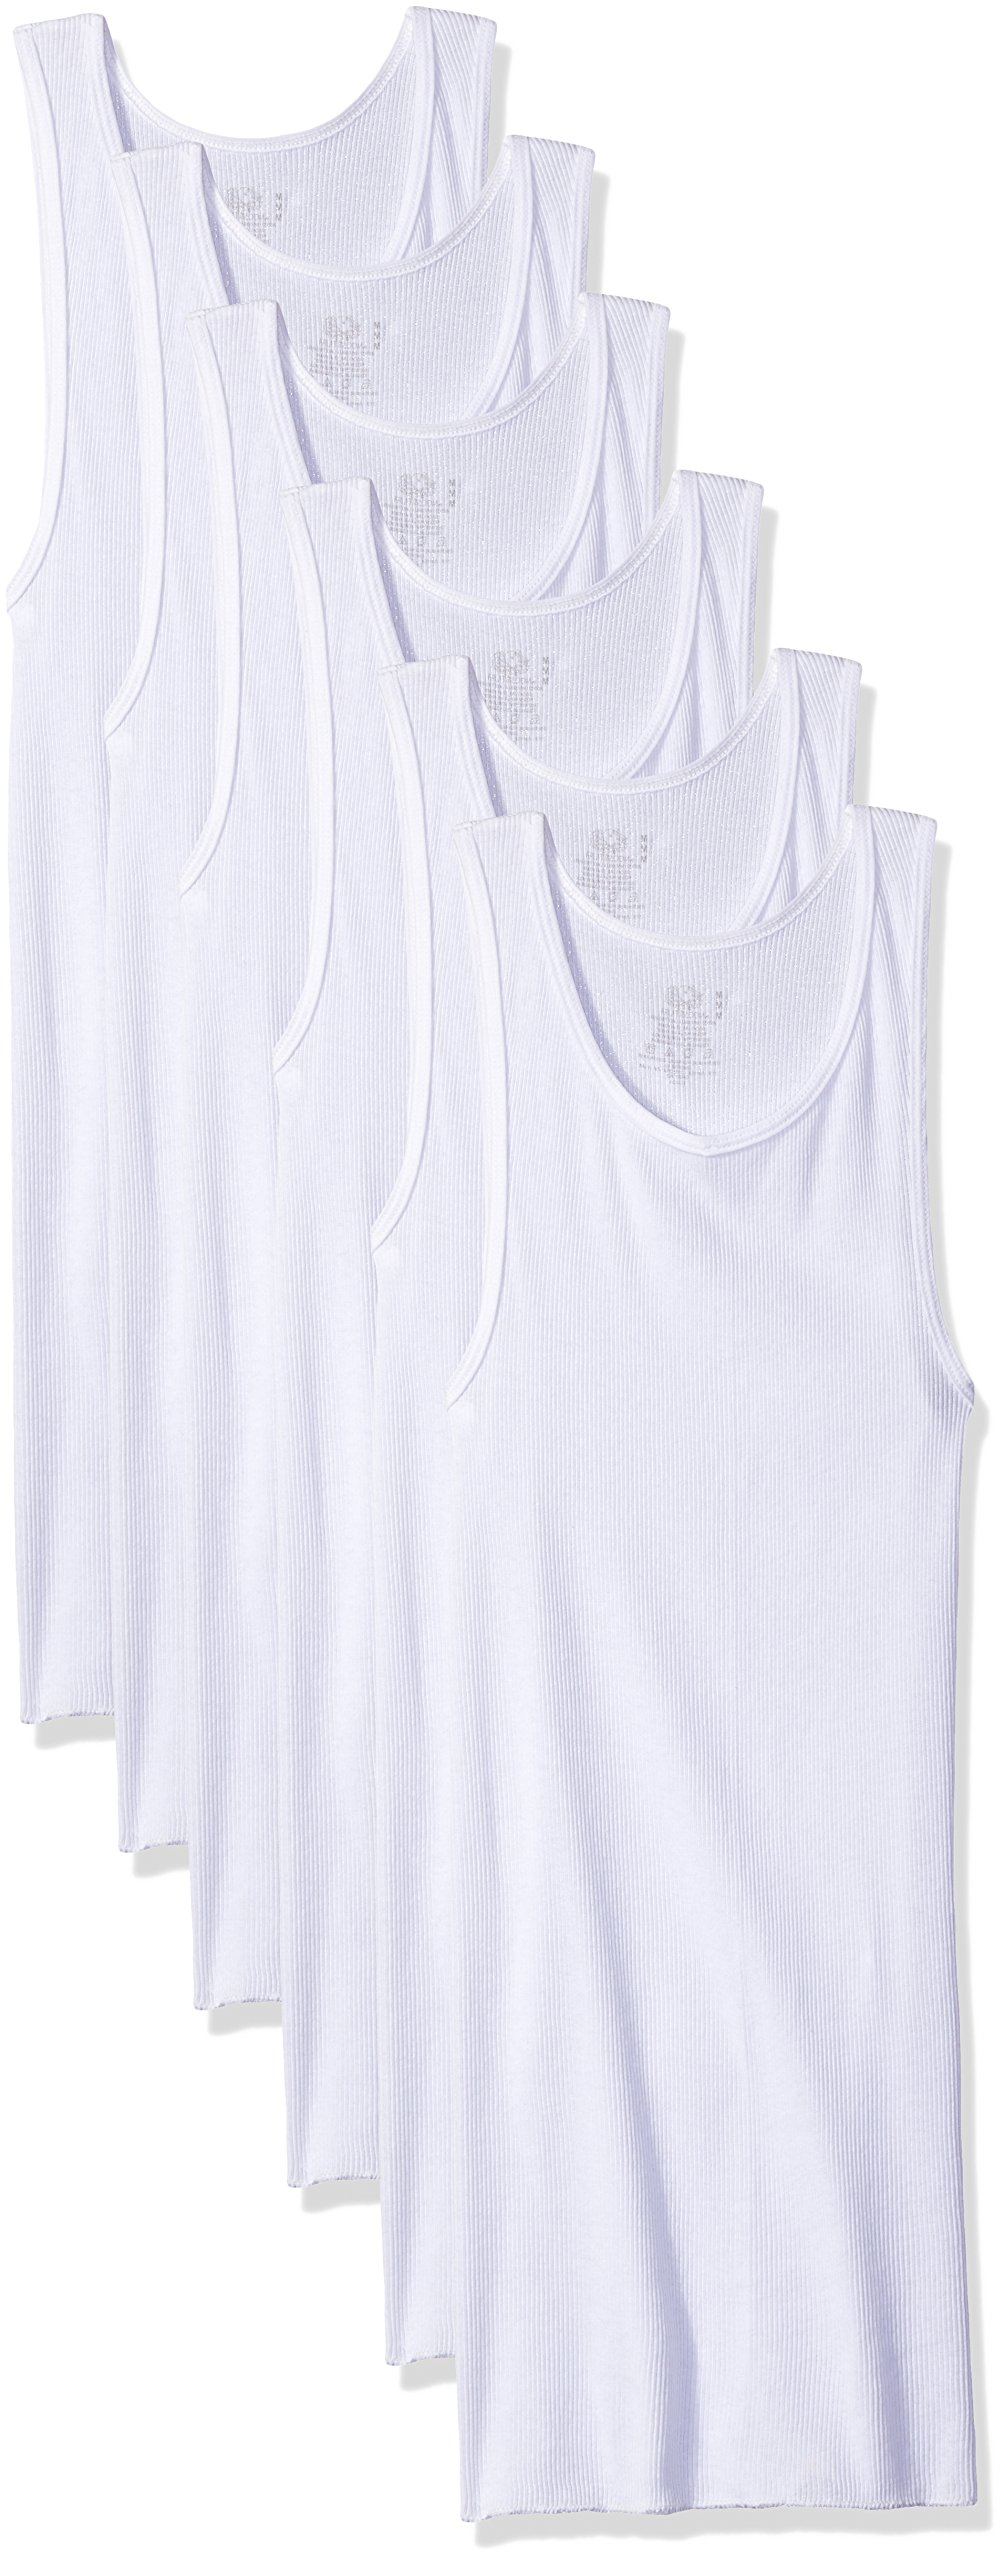 Fruit of the Loom Men's A-Shirt, White, Large(Pack of 6) by Fruit of the Loom